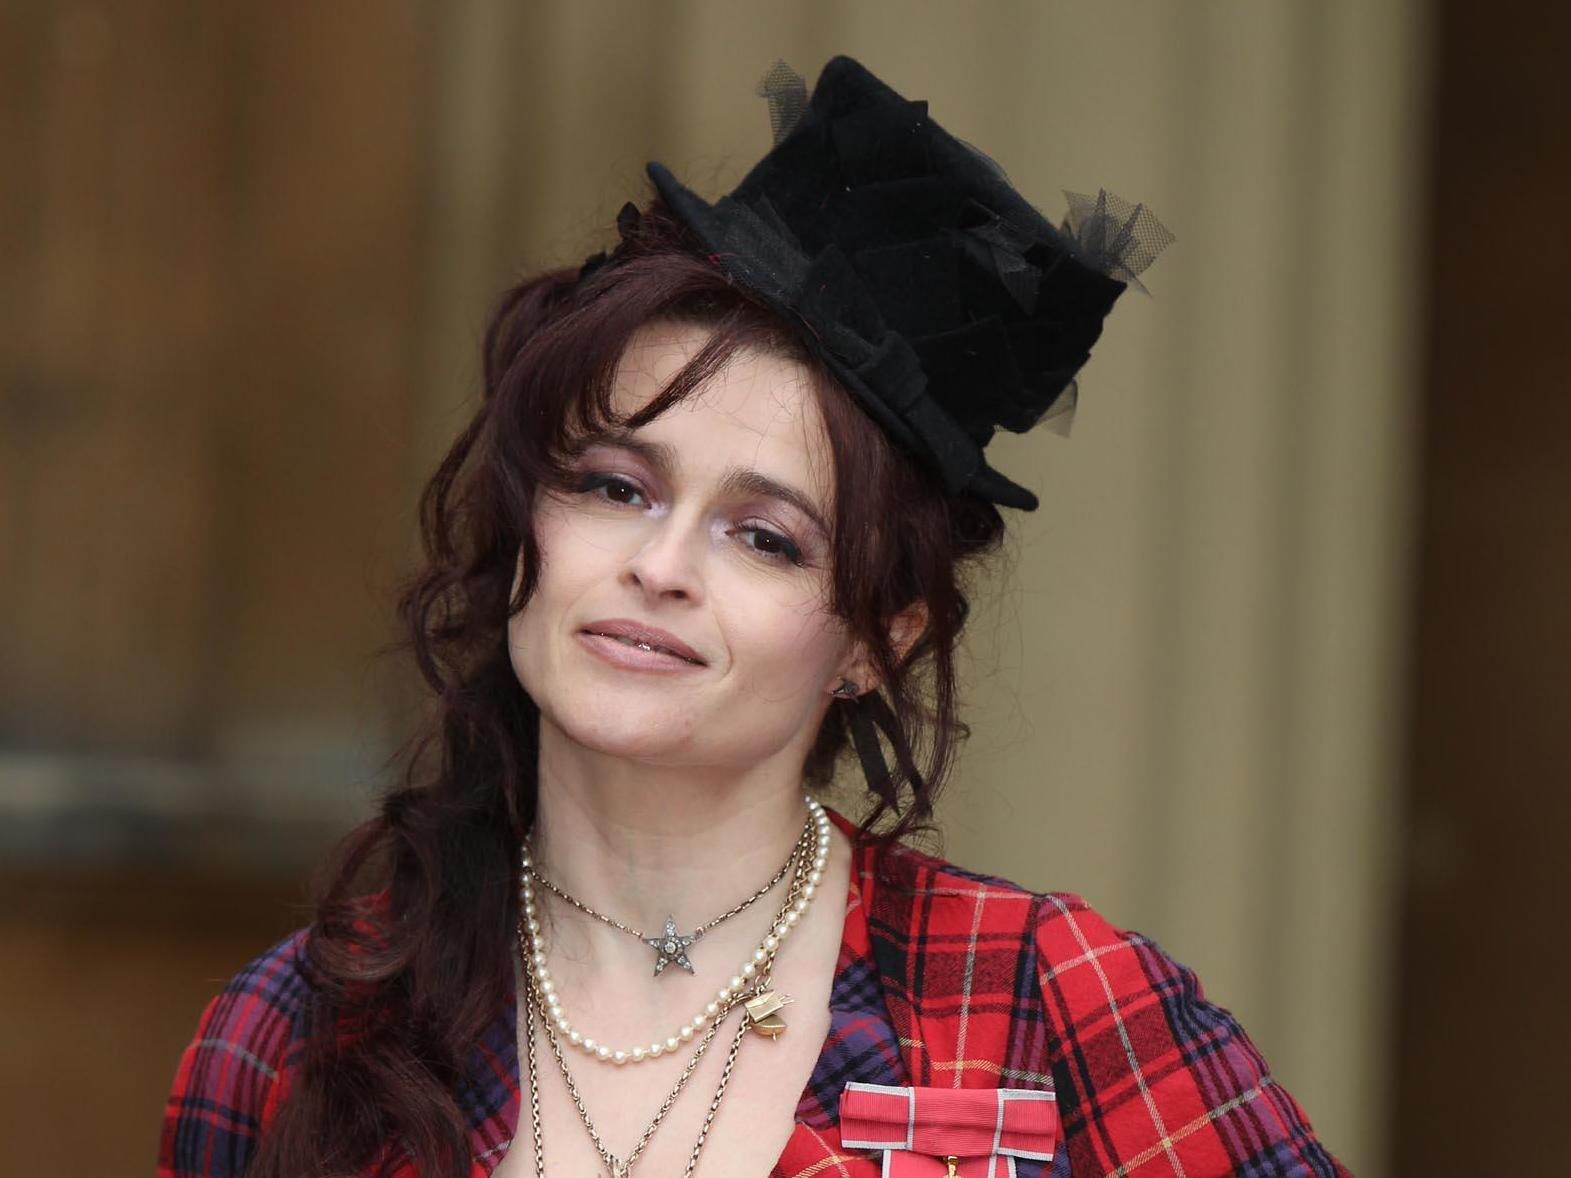 The Crown: Helena Bonham Carter says Princess Margaret's ghost told her she was 'better than the other actor' considered for the role - The Independent